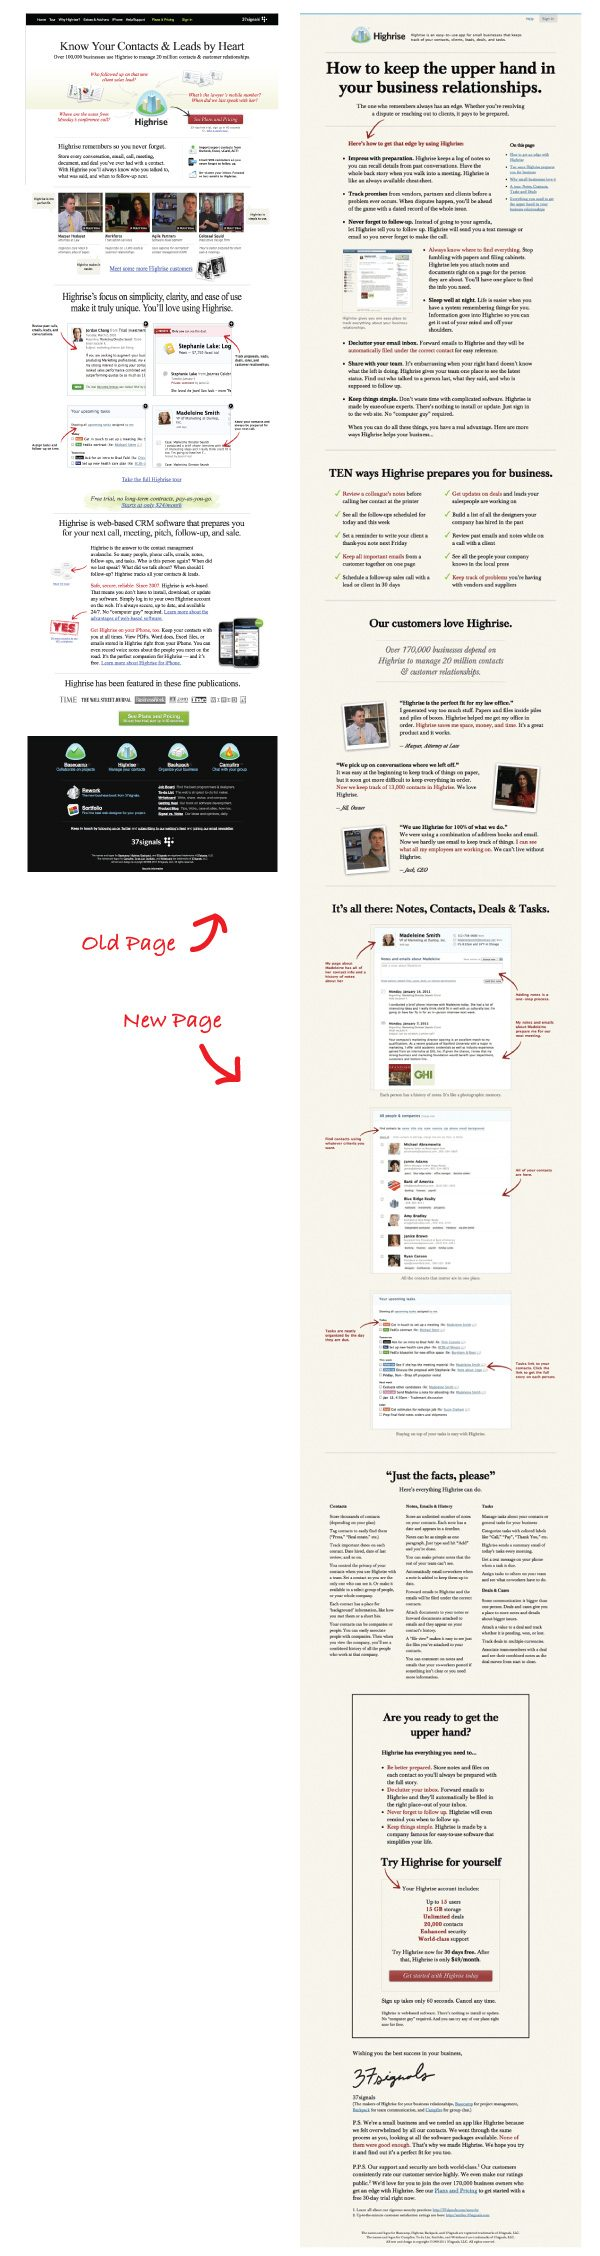 this image shows Highrise's A/B test on page length